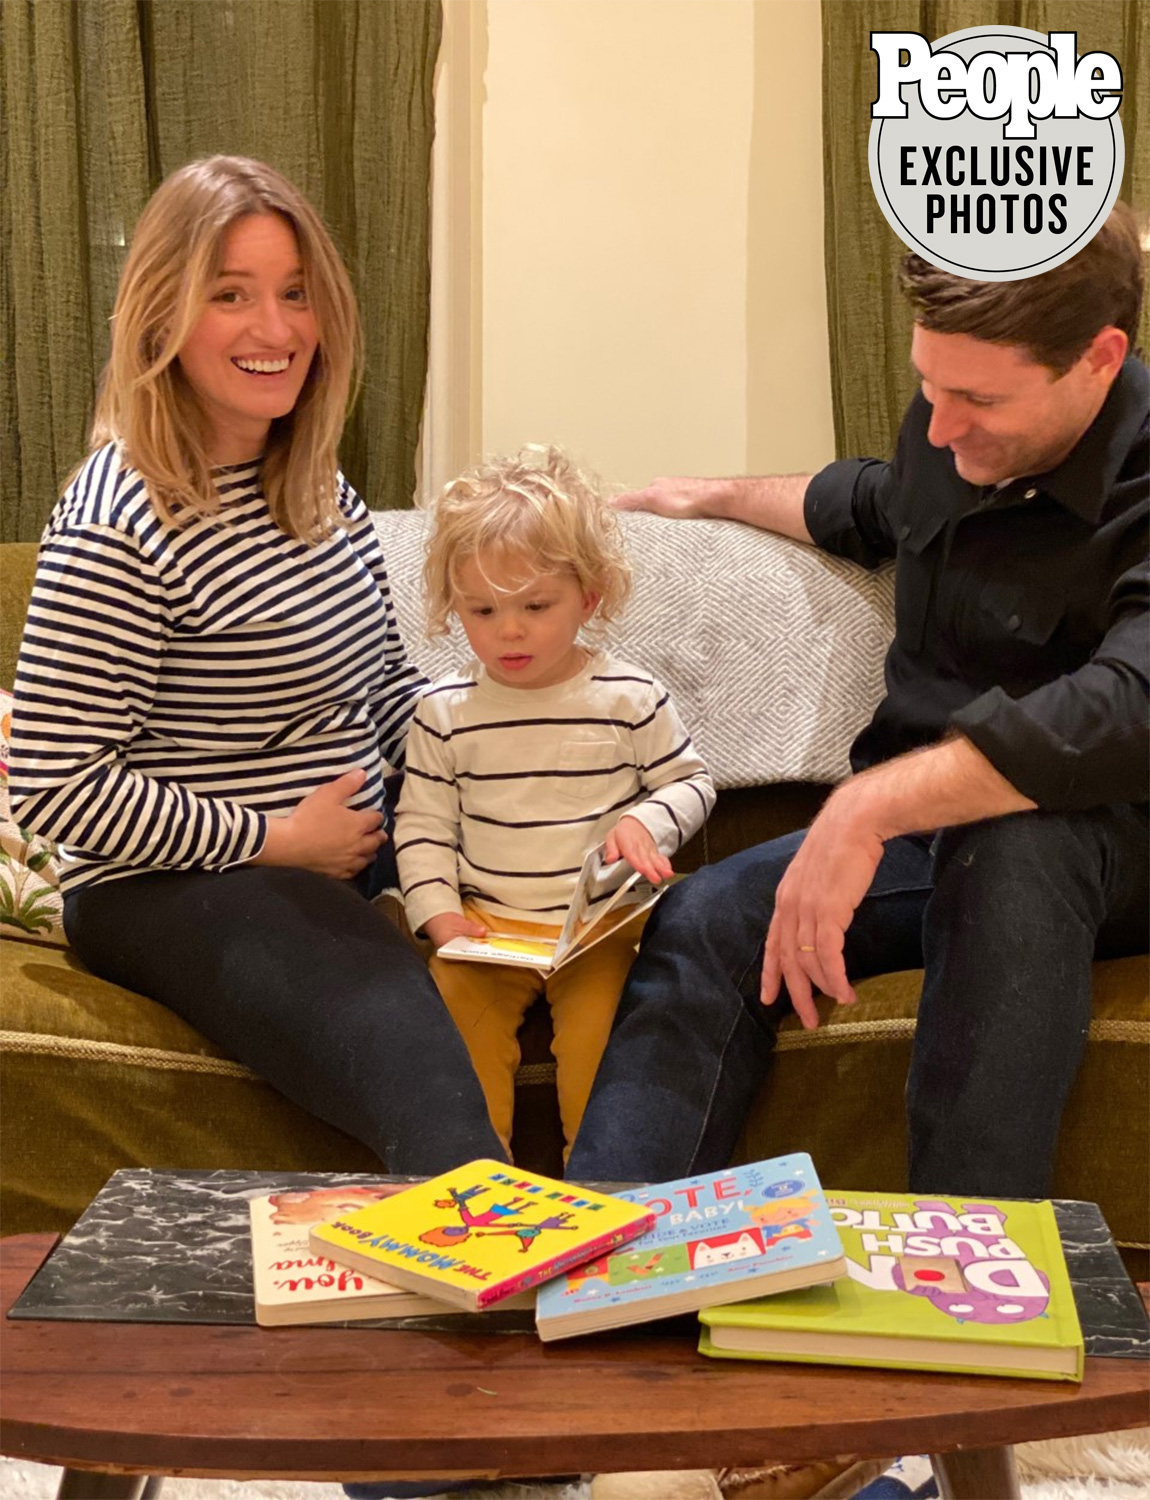 MSNBC Live's Katy Tur and Husband Tony Dokoupil Expecting Second Child Together, a Daughter